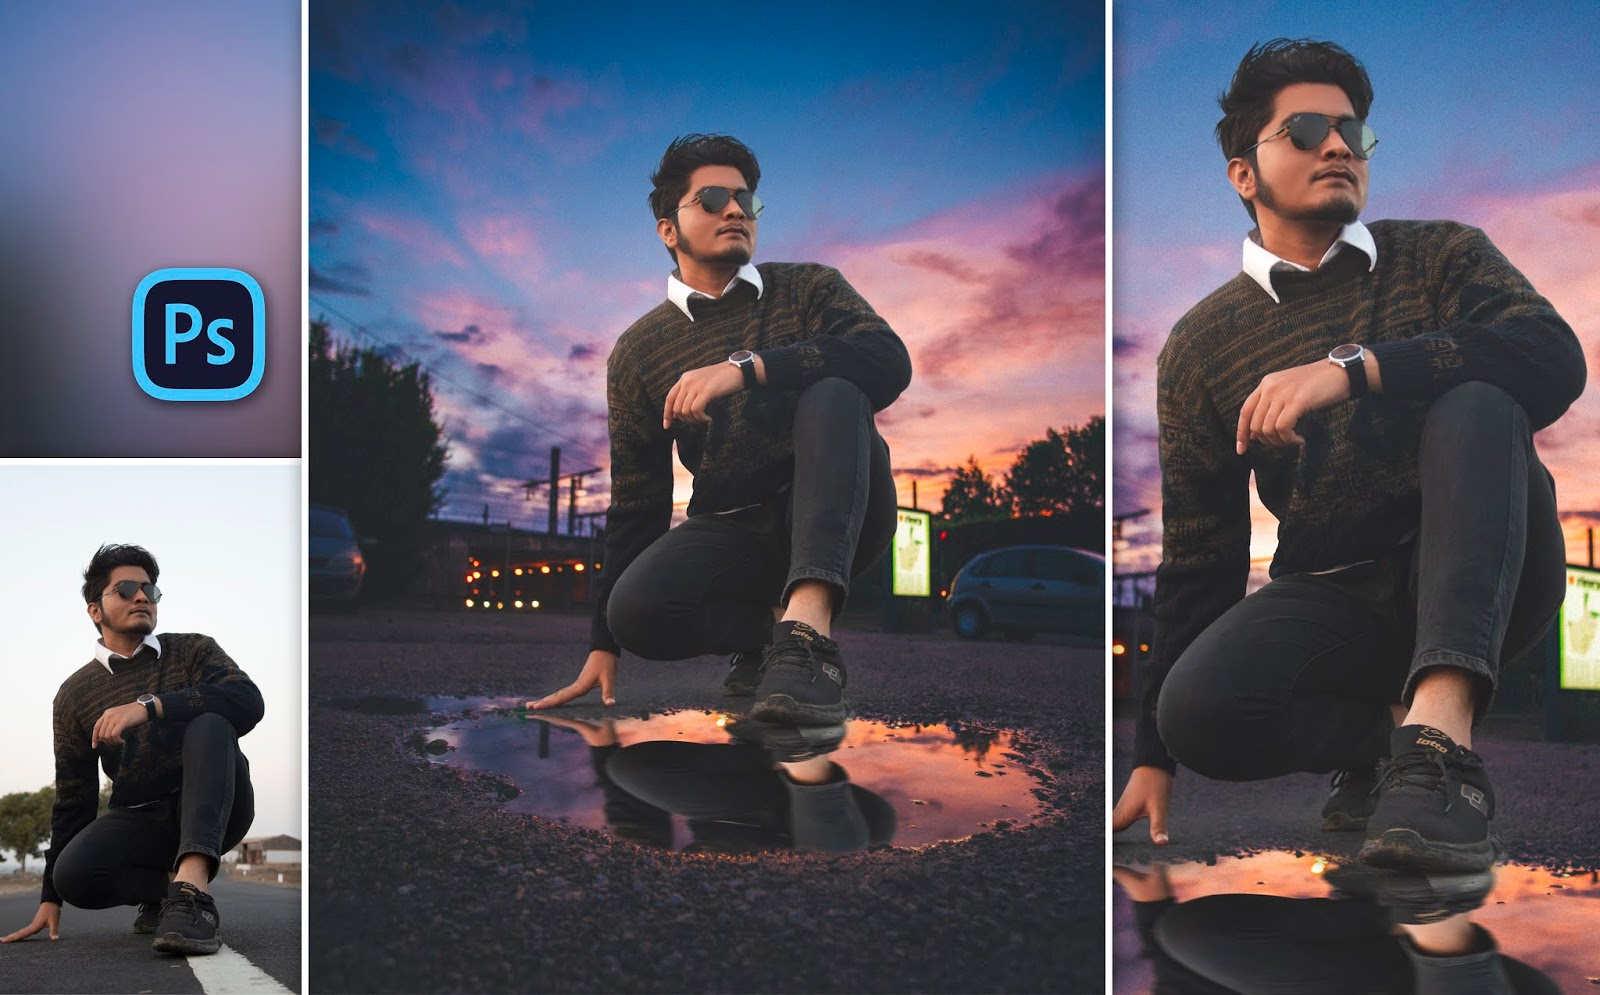 How to Edit Photo Like @kellansworld in Photoshop | Kellansword style photo editing in photoshop